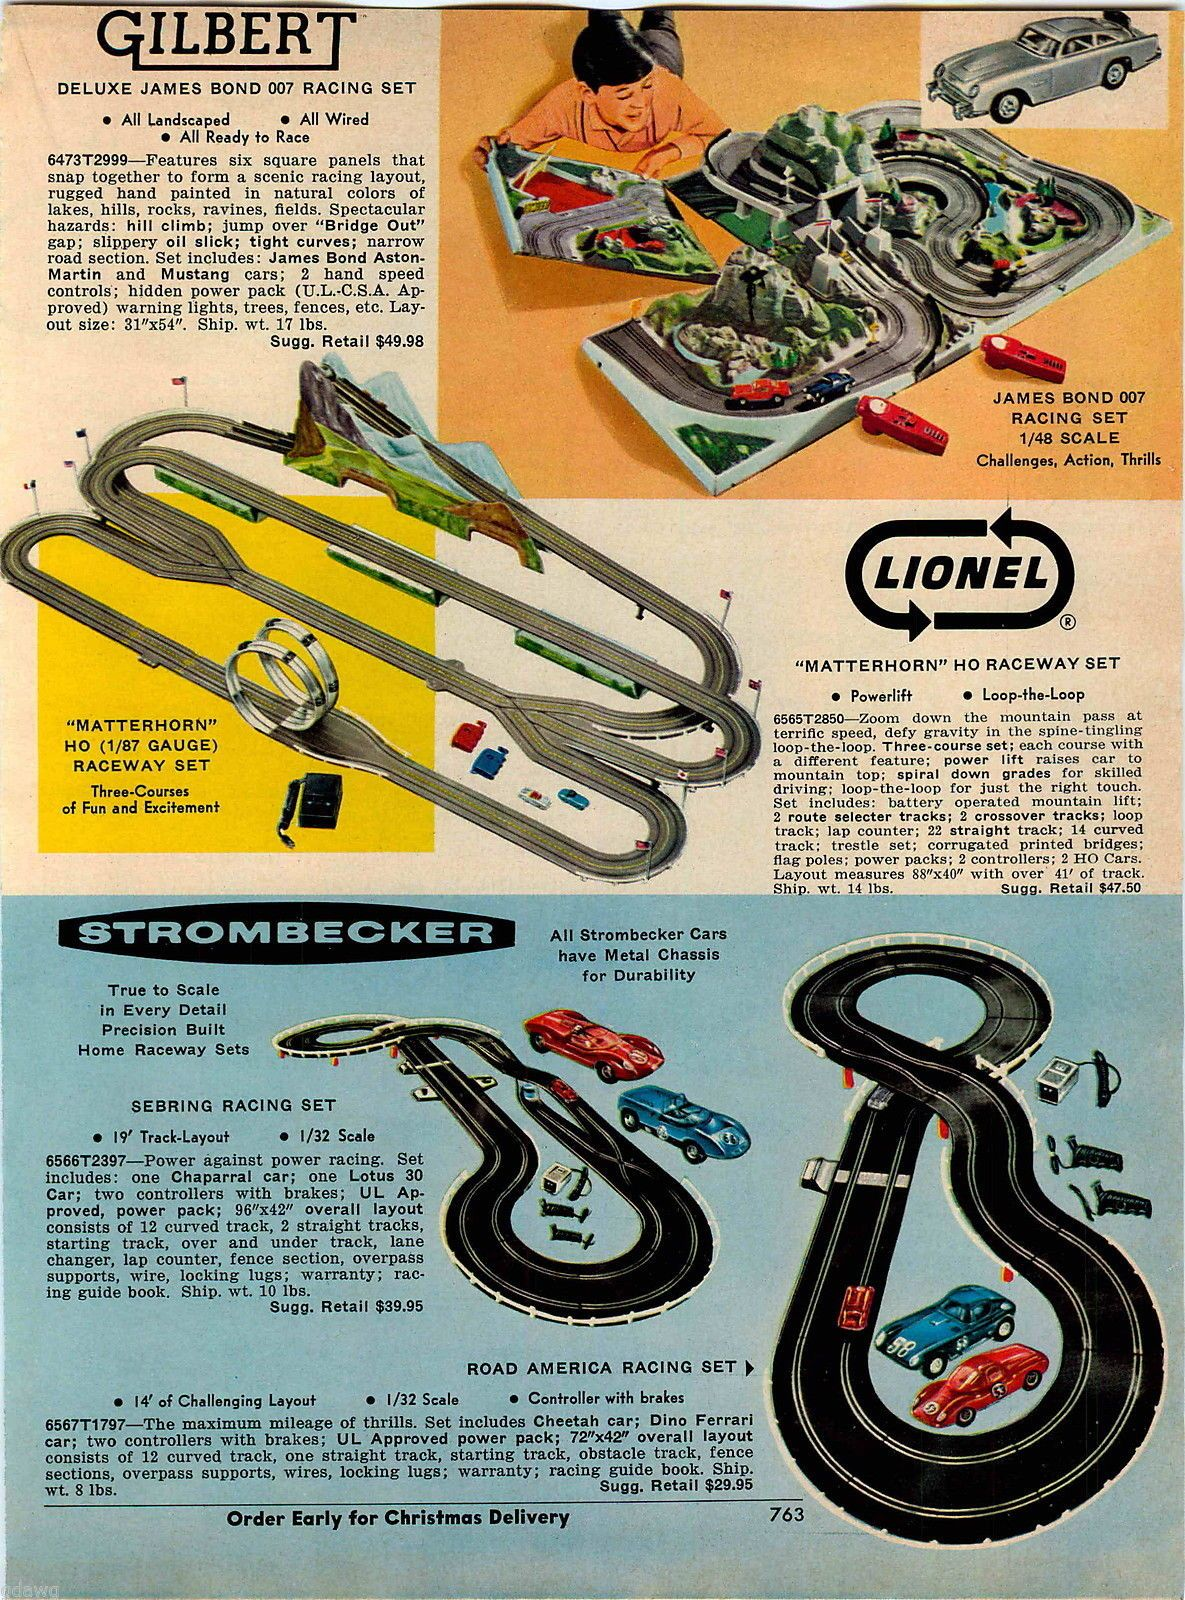 hight resolution of 1967 advert gilbert james bond 007 lionel strombecker race car raceway toy sets ebay